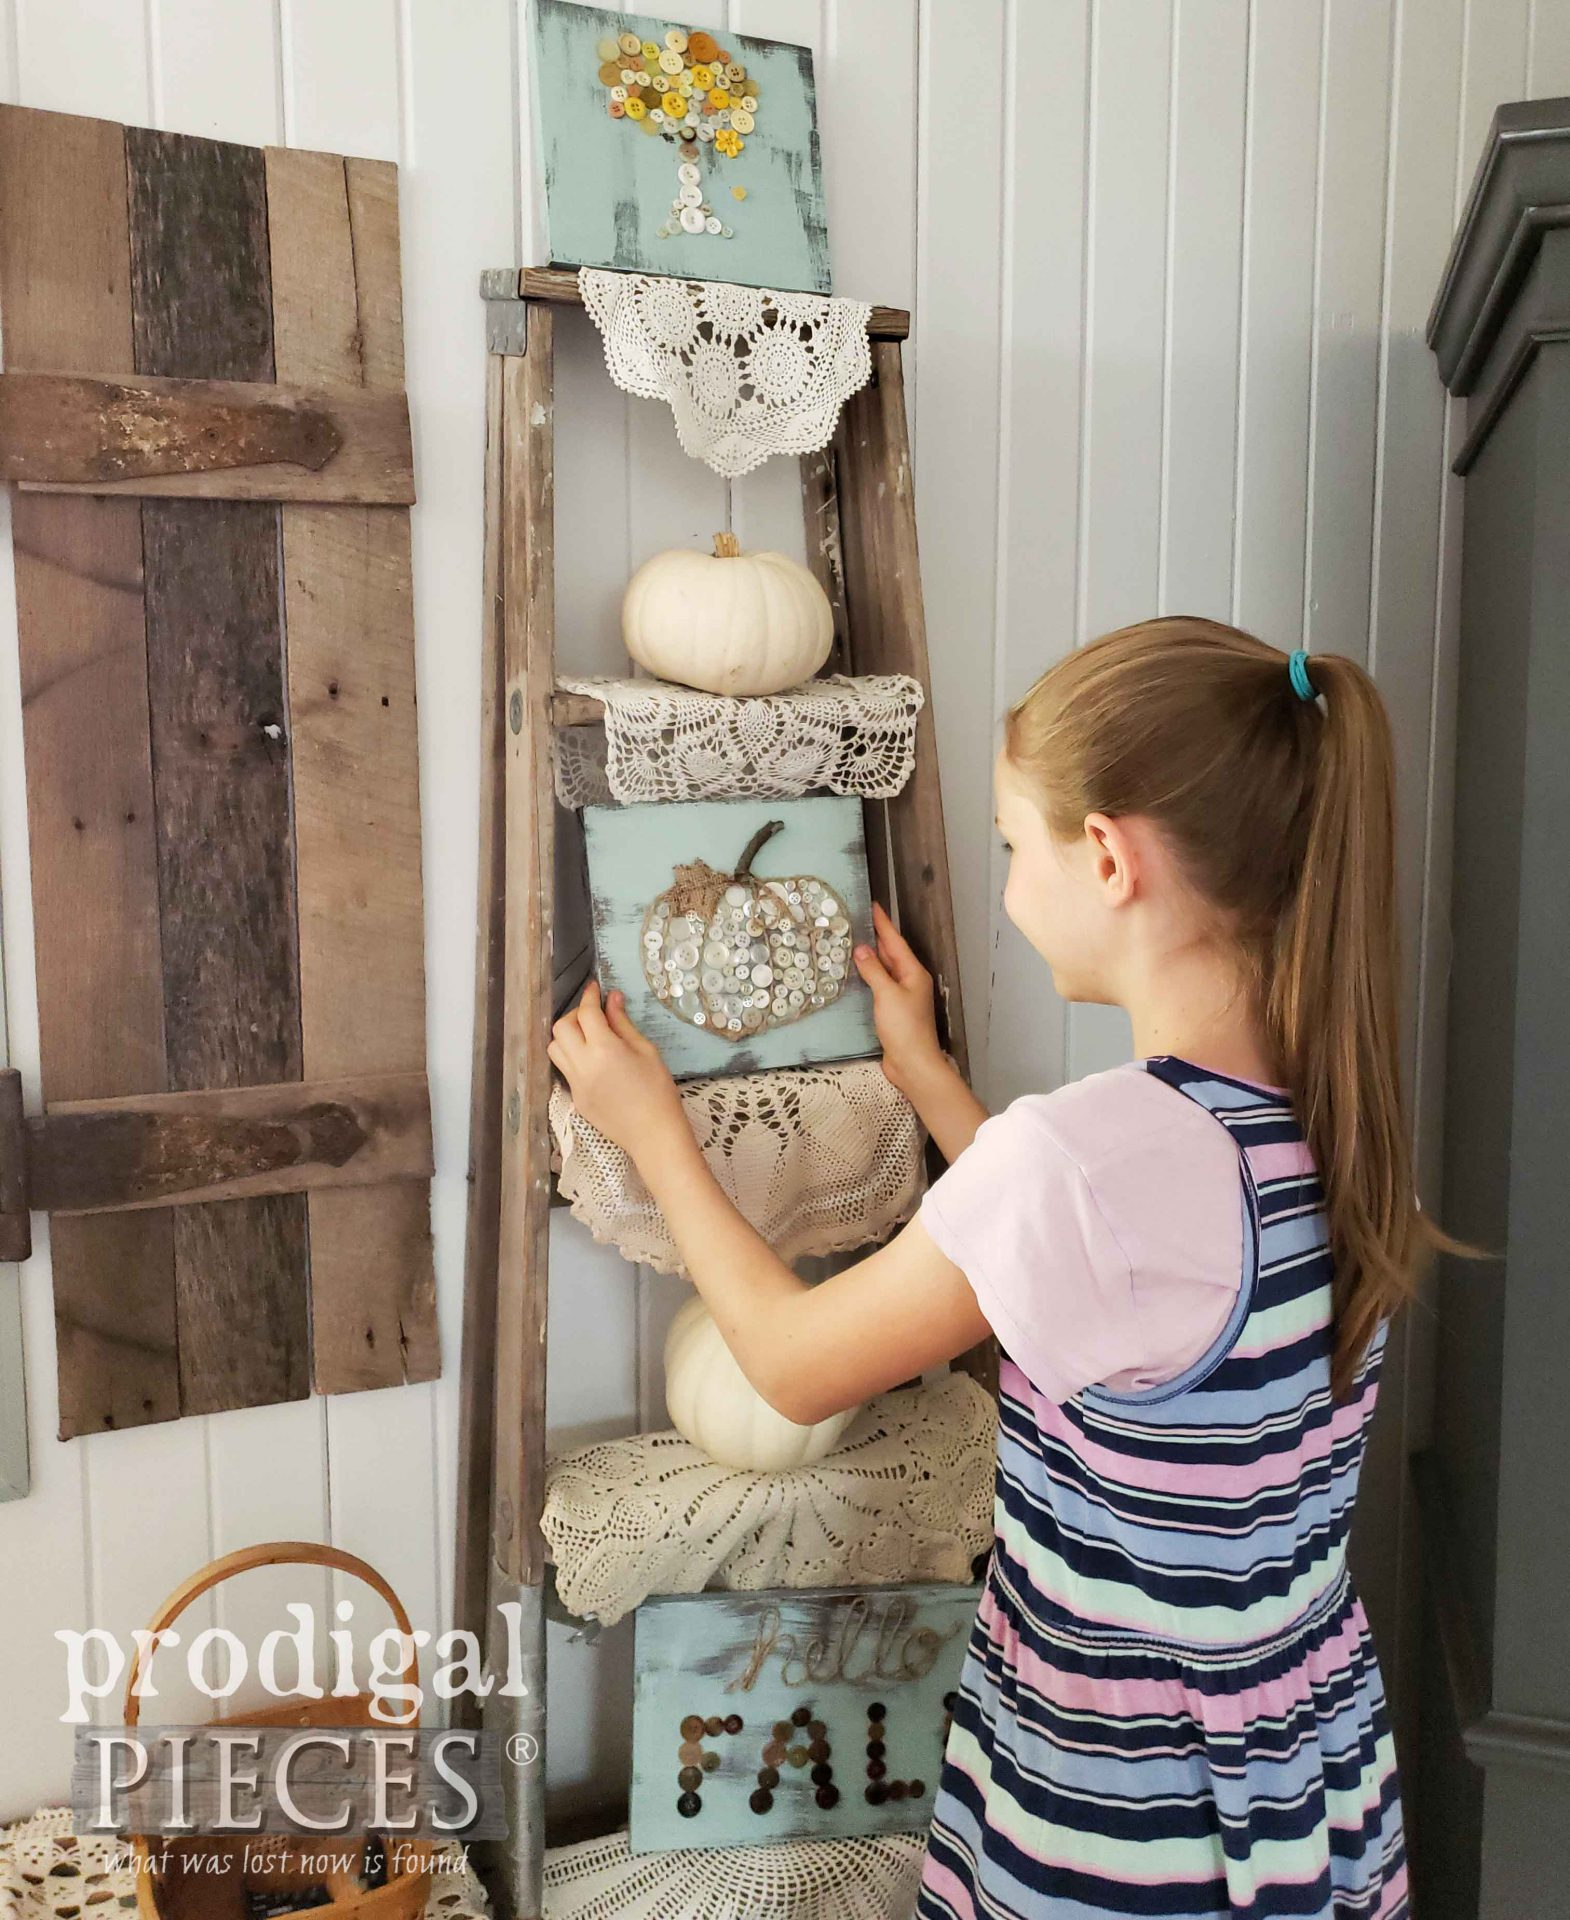 Girl Hanging DIY Button Art for Fall Decor | Prodigal Pieces Kids CREATE video tutorial at prodigalpieces.com #prodigalpieces #diy #home #homedecor #kids #crafts #farmhouse